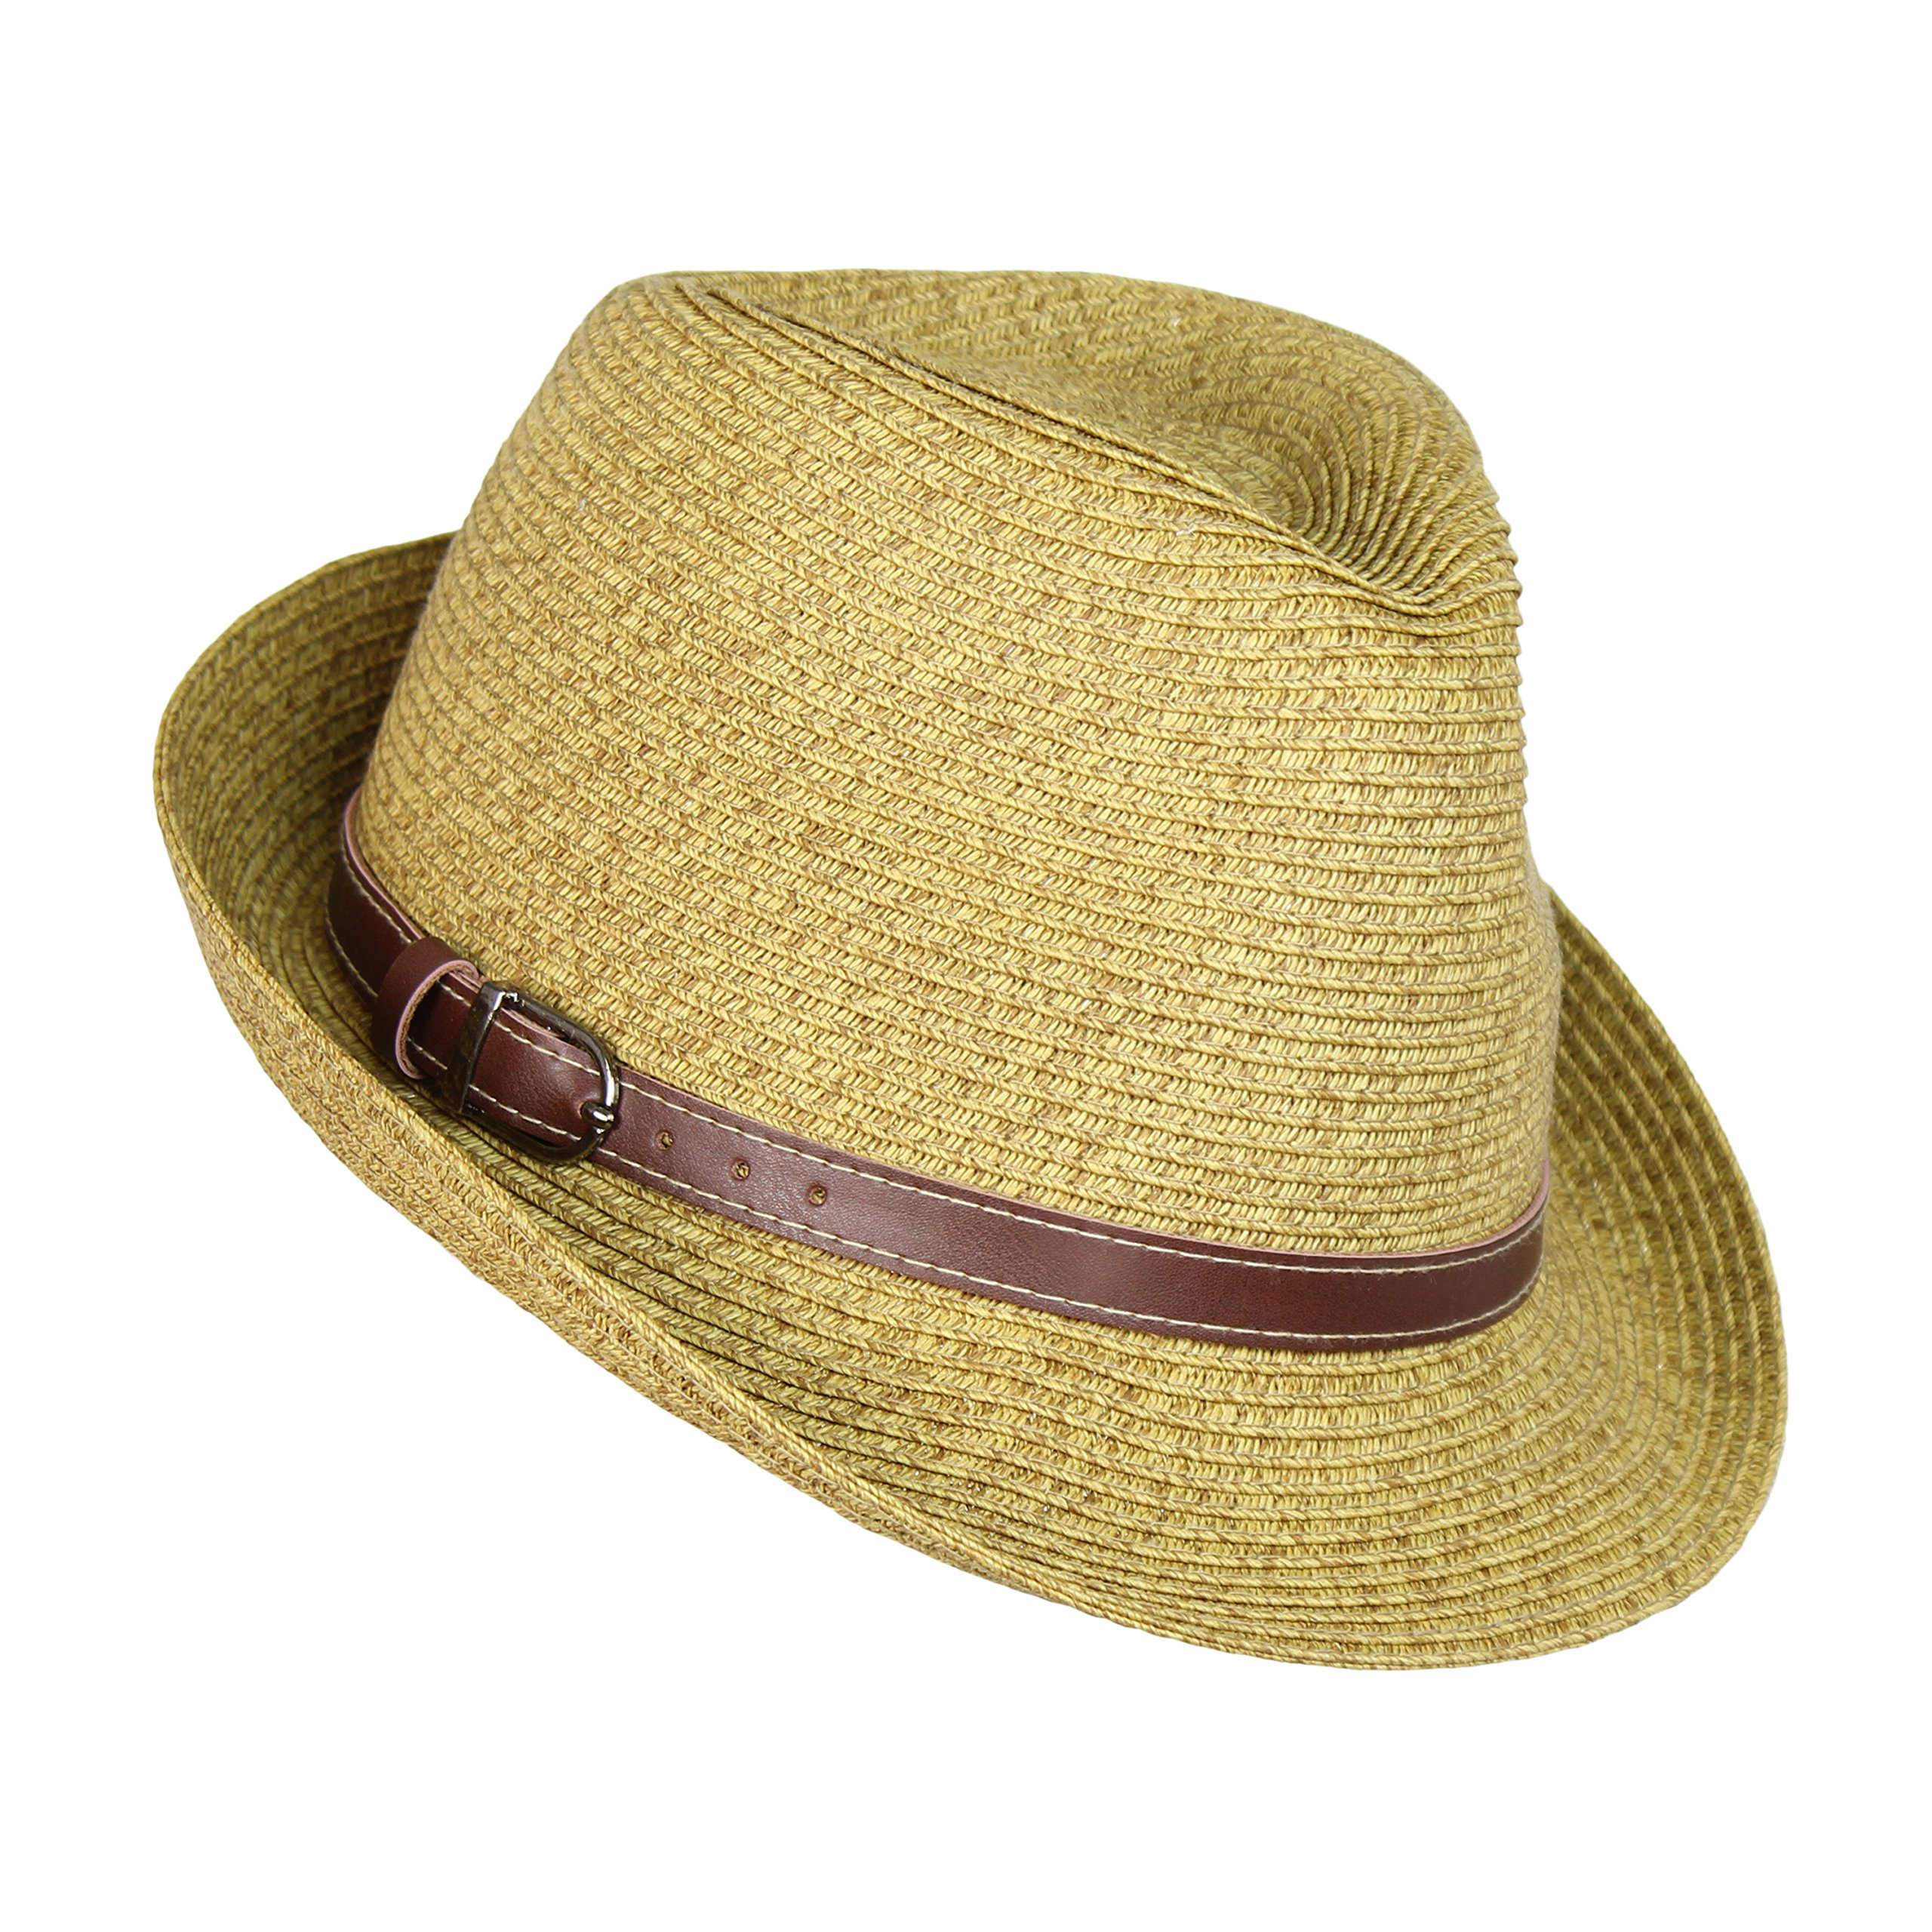 Straw Panama Hat, Tweed Festival Fedora with Faux Leather Hatband, Packable (Natural Tweed)